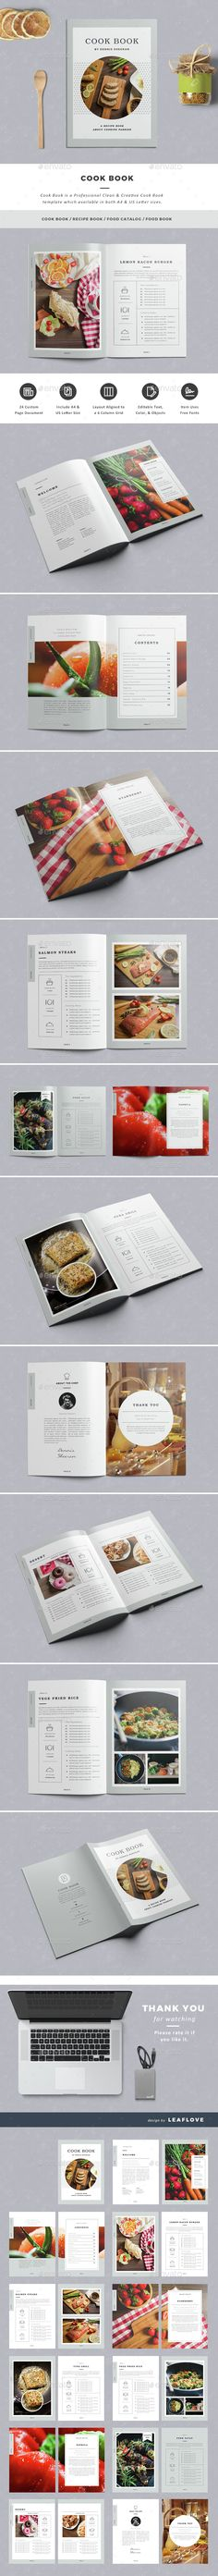 Cook Book / Recipe Book by LeafLove Cook Book / Professional Clean & Creative Cook Book Template. This layout is suitable for any project purpose. Recipe Book Templates, Cookbook Template, Menu Template, Recipe Book Design, Cookbook Design, Book Design Layout, Book Cover Design, Editorial Layout, Editorial Design